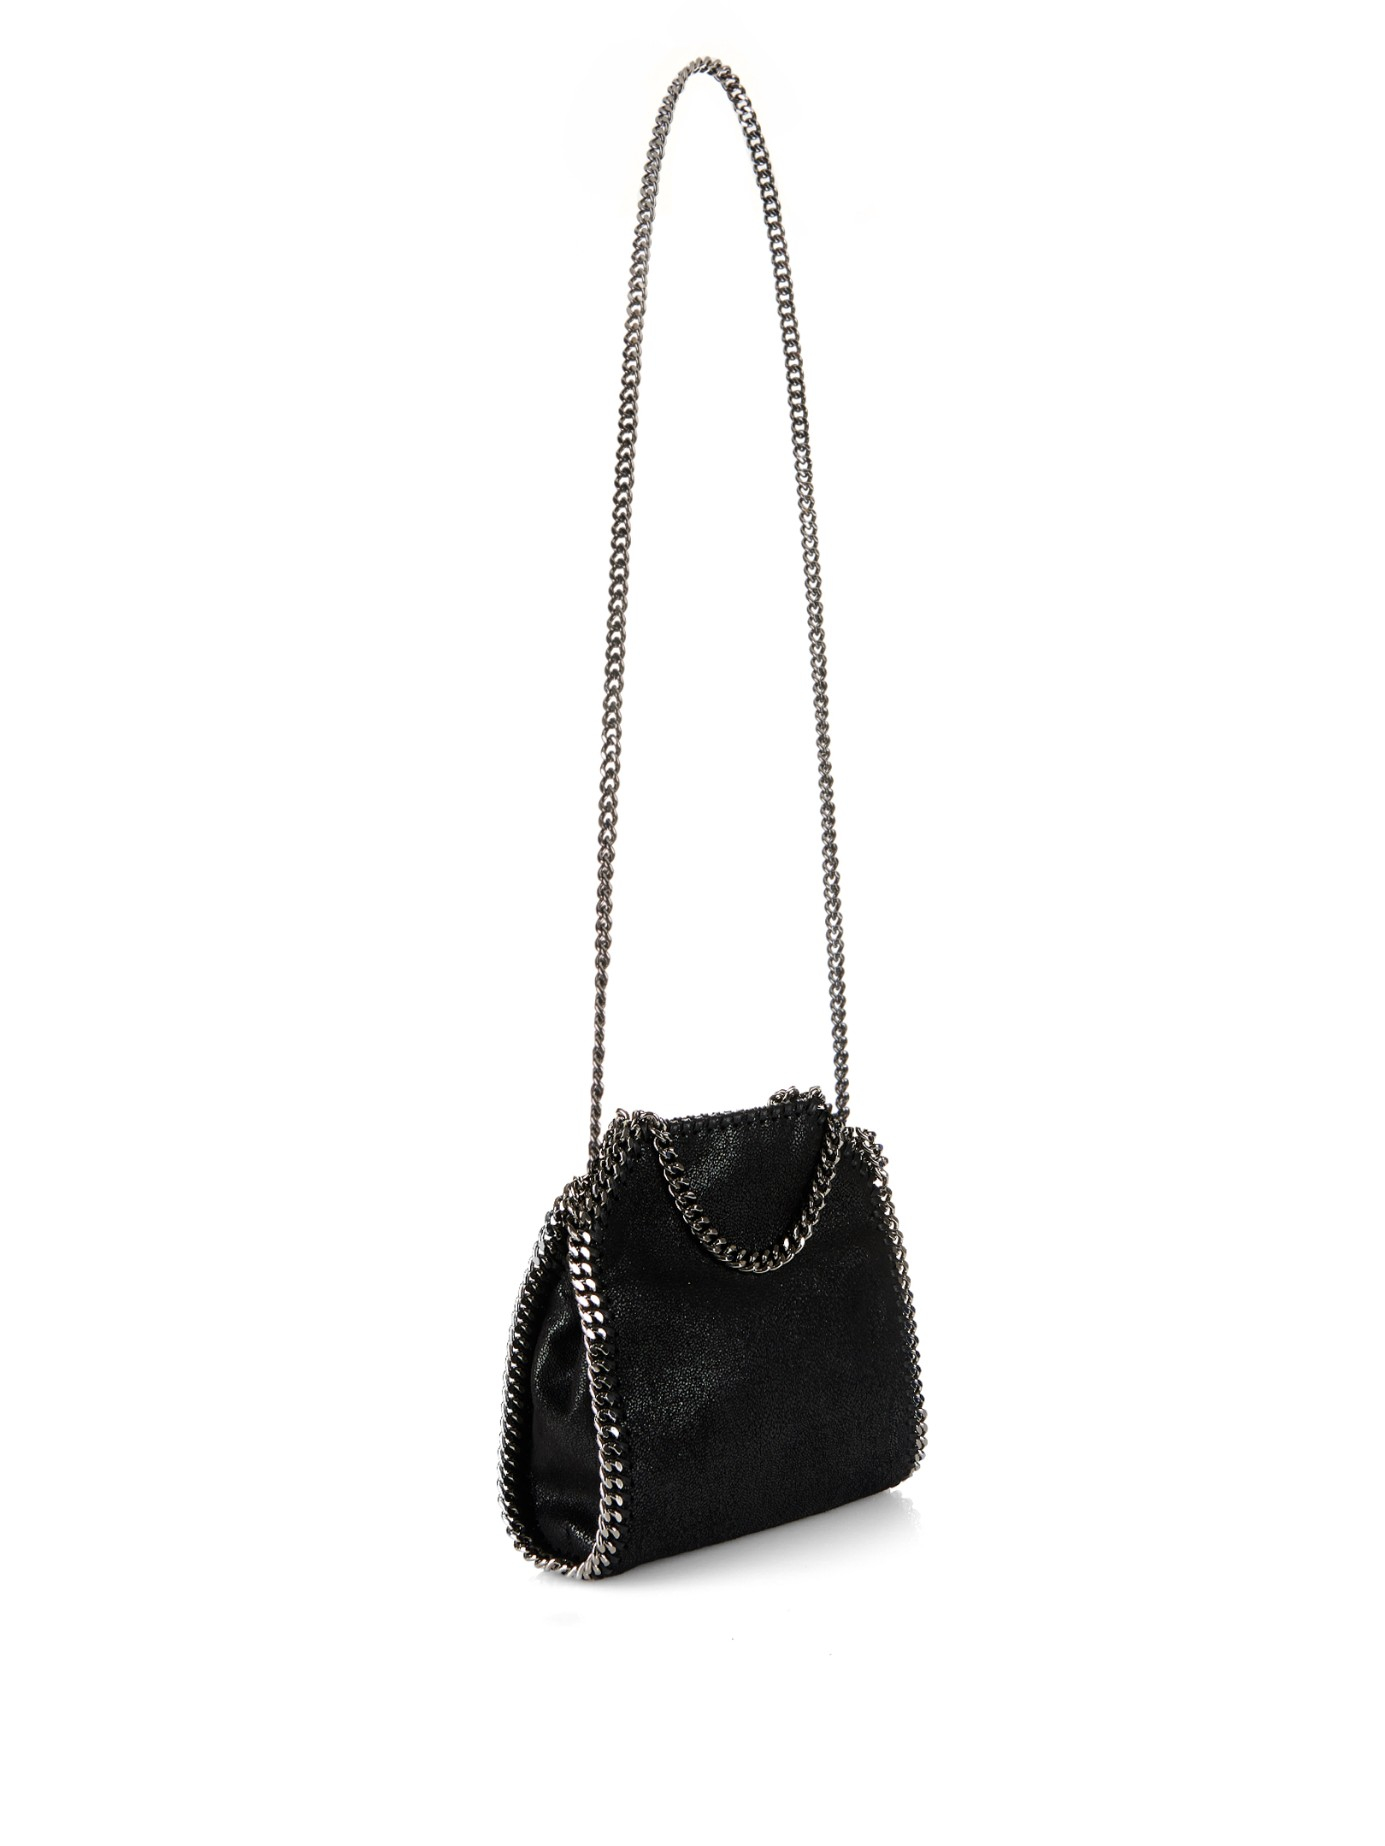 5c3444596fb3 Gallery. Previously sold at  MATCHESFASHION.COM · Women s Stella Mccartney  Falabella Women s Vegan Bags Women s Prada Cross Body ...